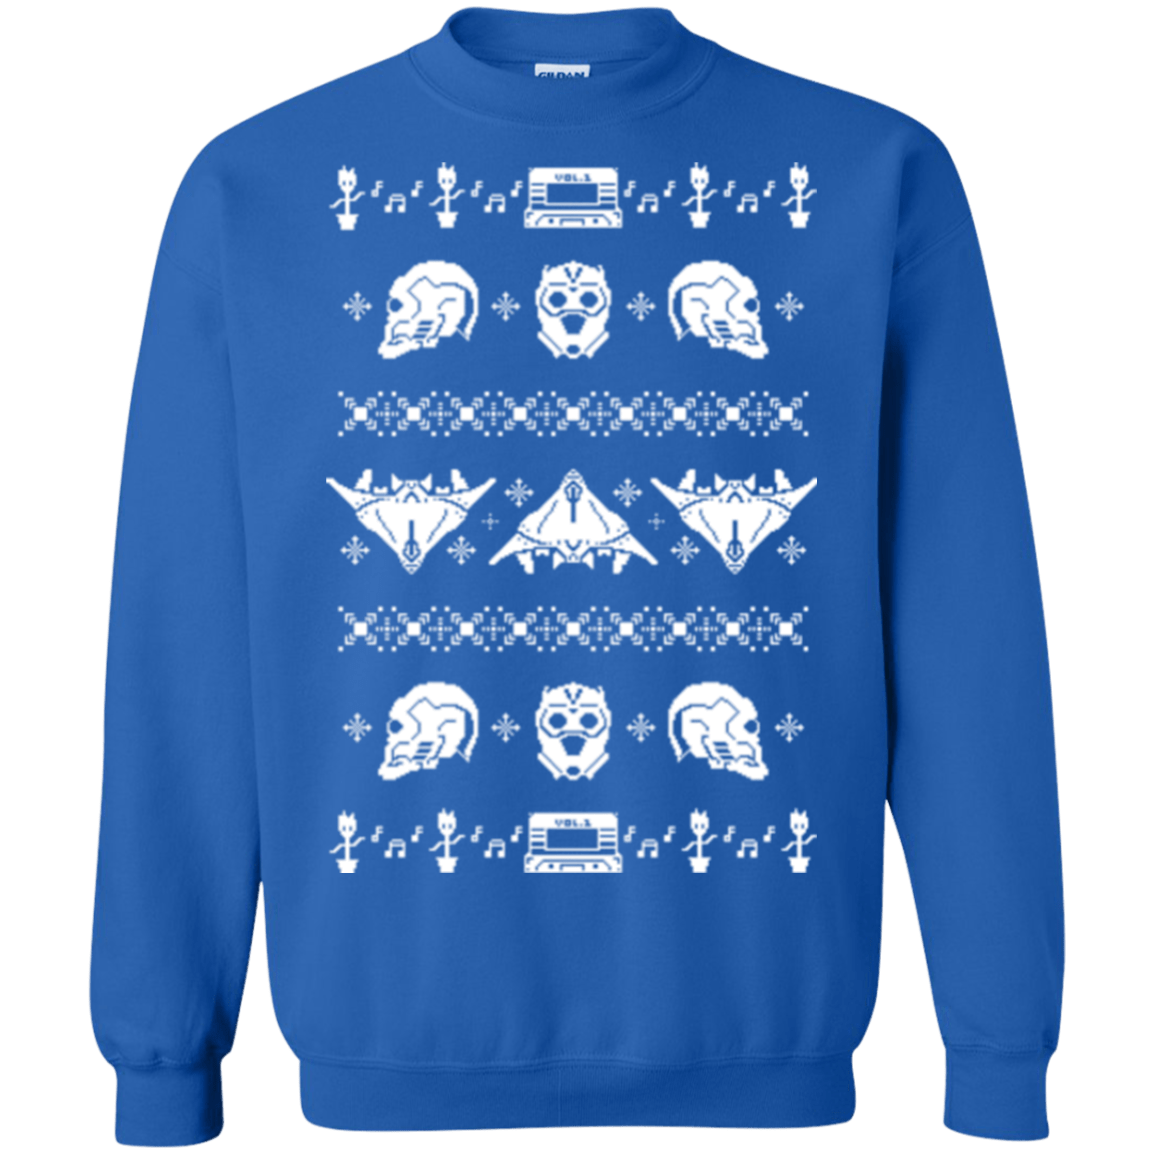 Sweatshirts Royal / Small Merry Christmas A-Holes 2 Crewneck Sweatshirt